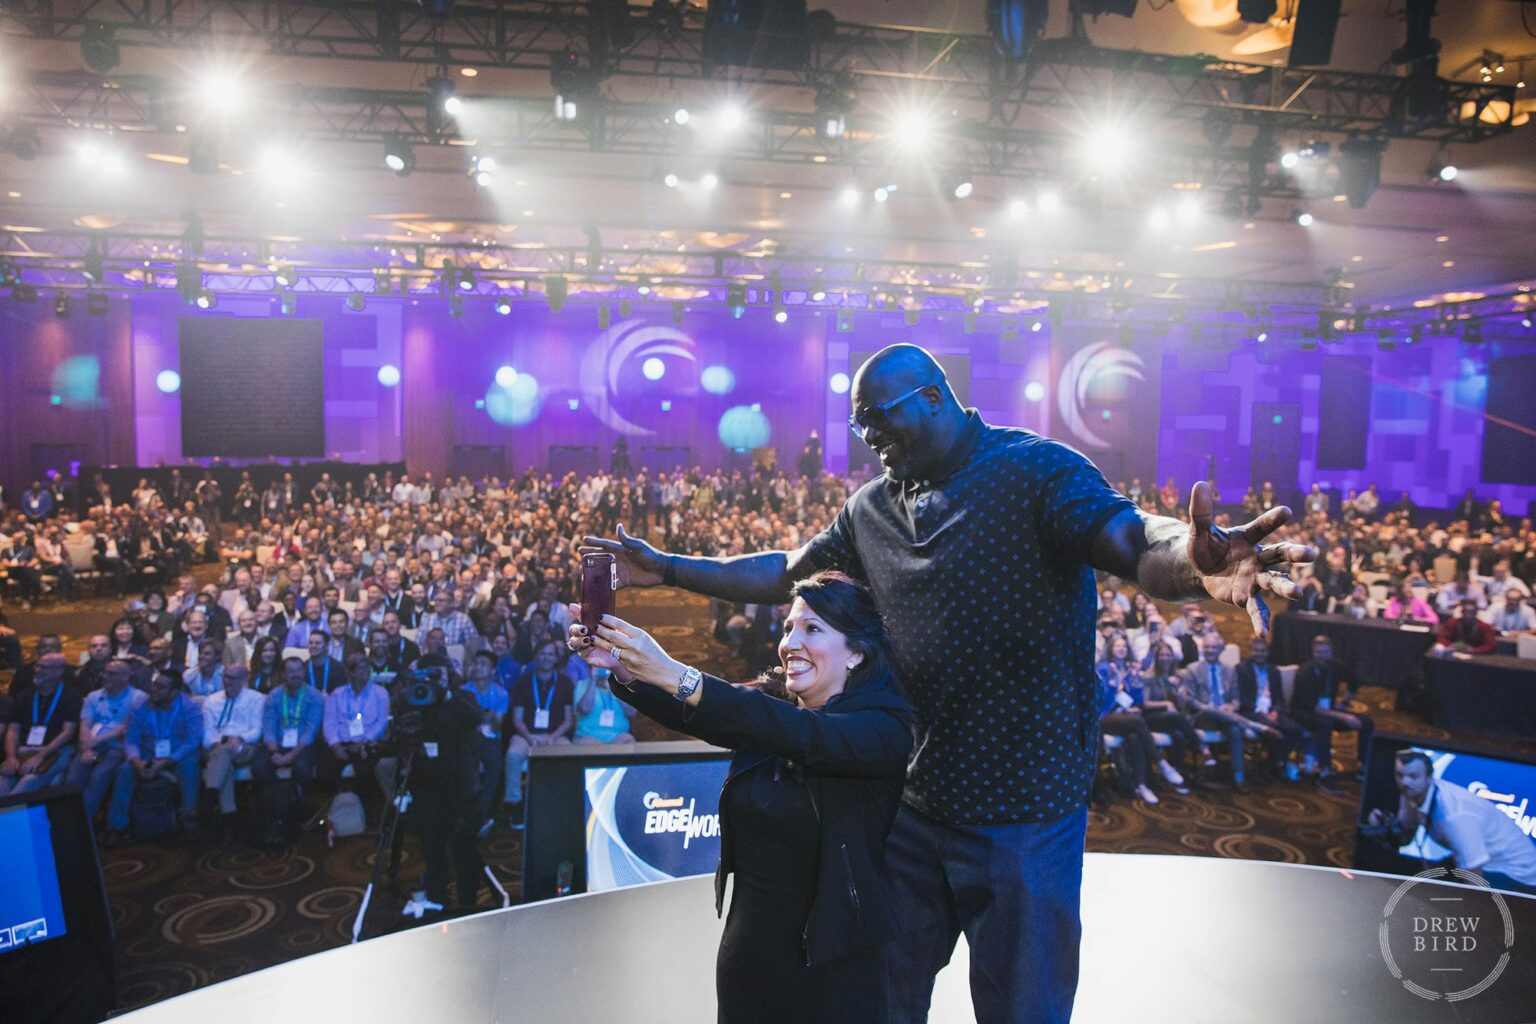 NBA star Shaquille O'Neal posing for selfie onstage in Las Vegas at the Aria Hotel. San Francisco corporate lifestyle photographer Drew Bird.